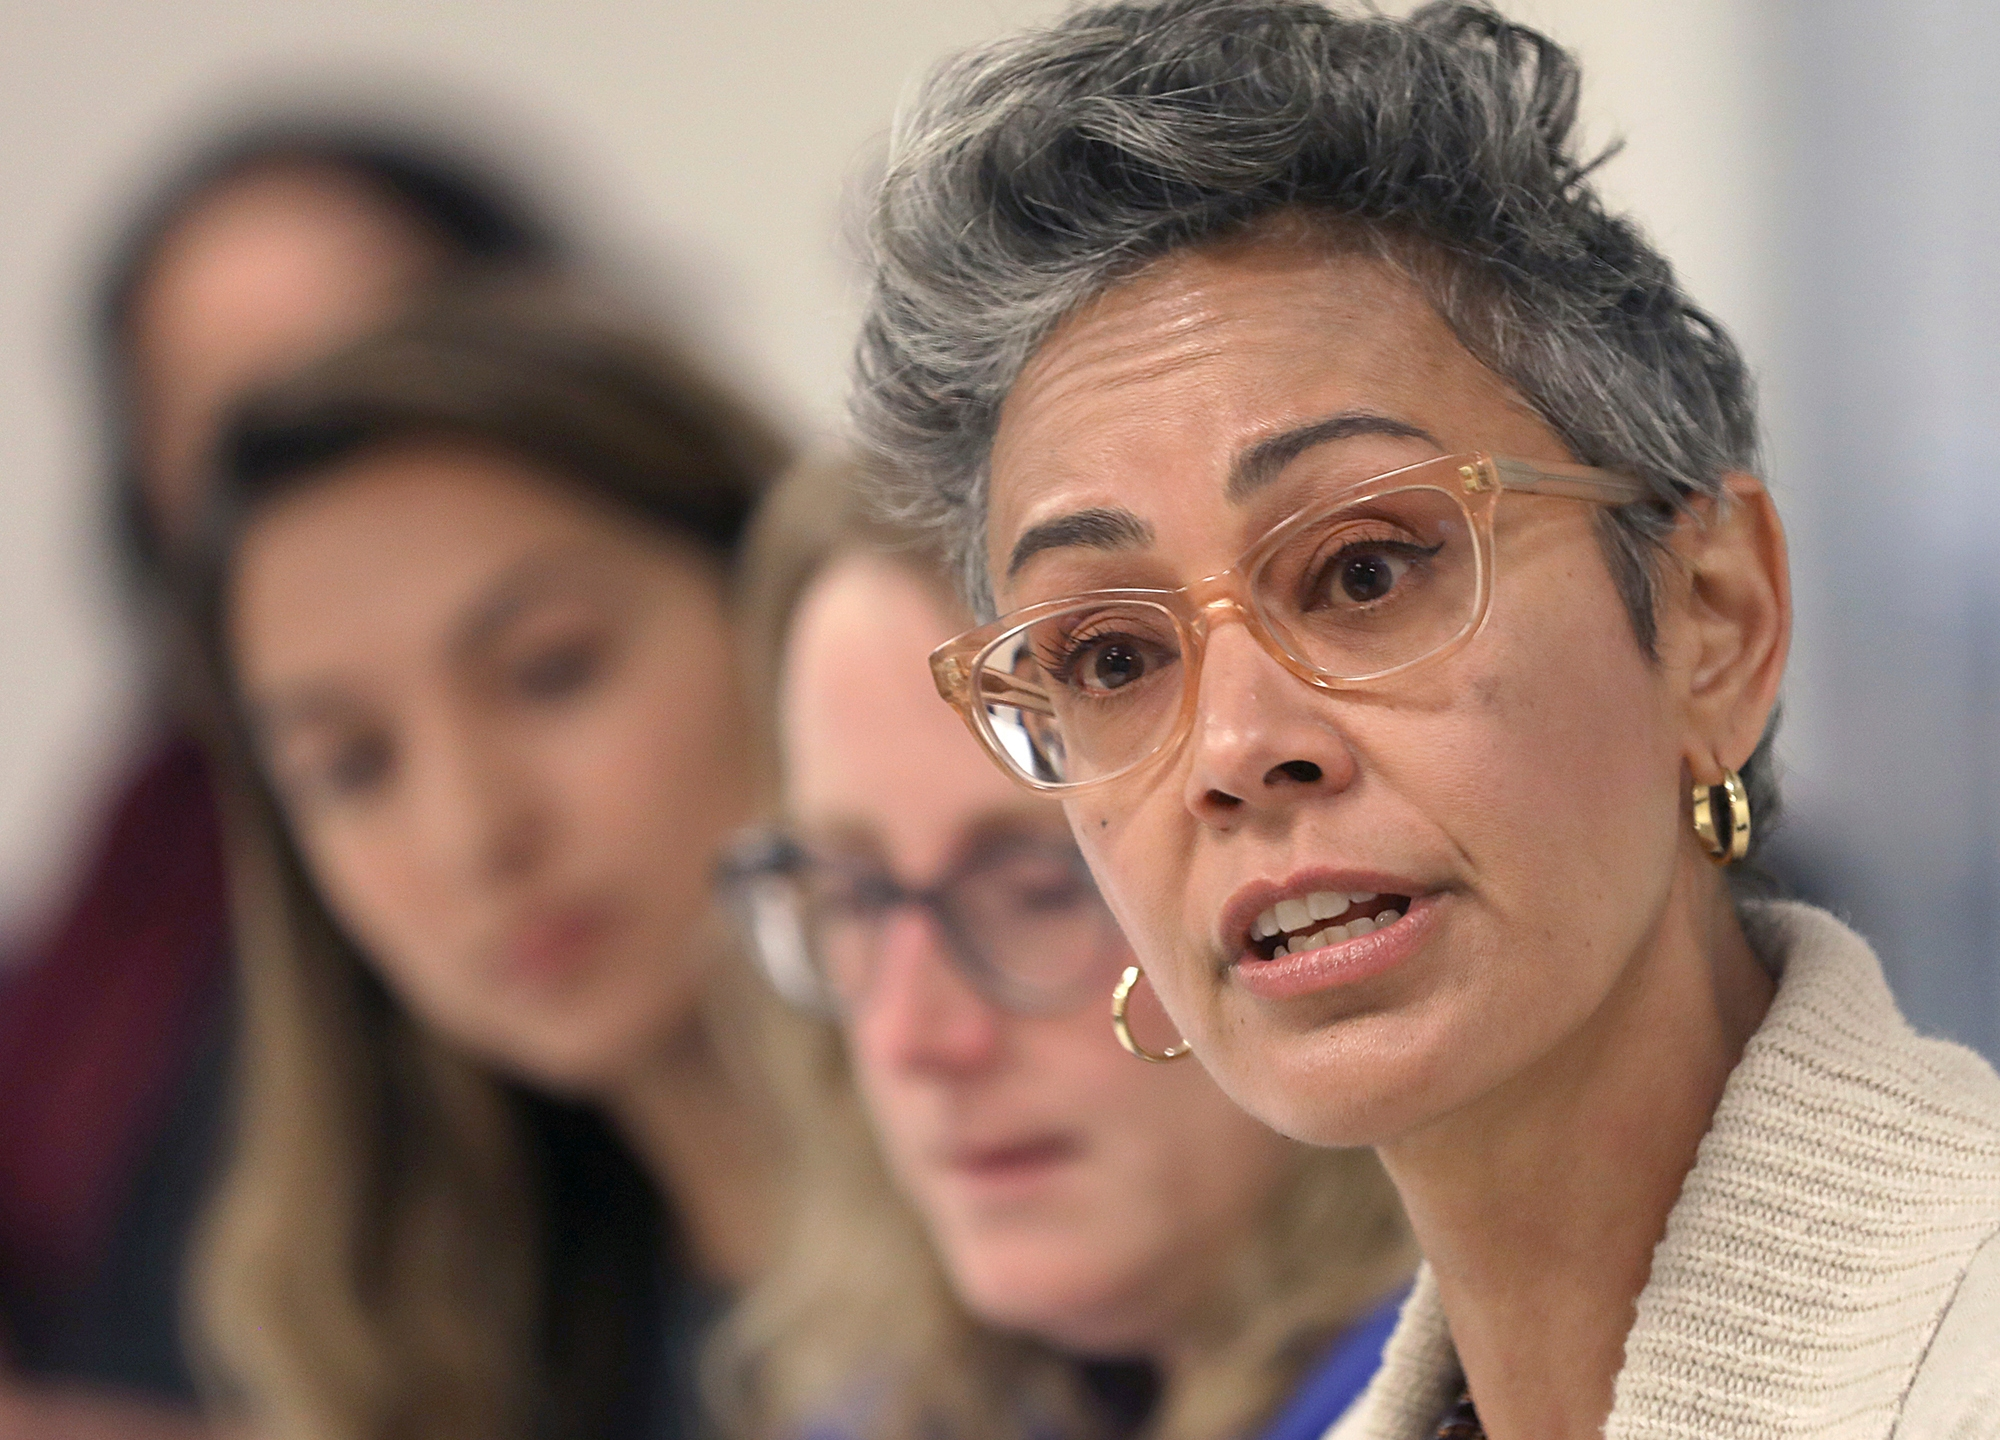 In this Sept. 26, 2018 file photo, Alison Collins, right, is seen during an editorial board meeting in San Francisco. (Liz Hafalia/San Francisco Chronicle via AP, File)